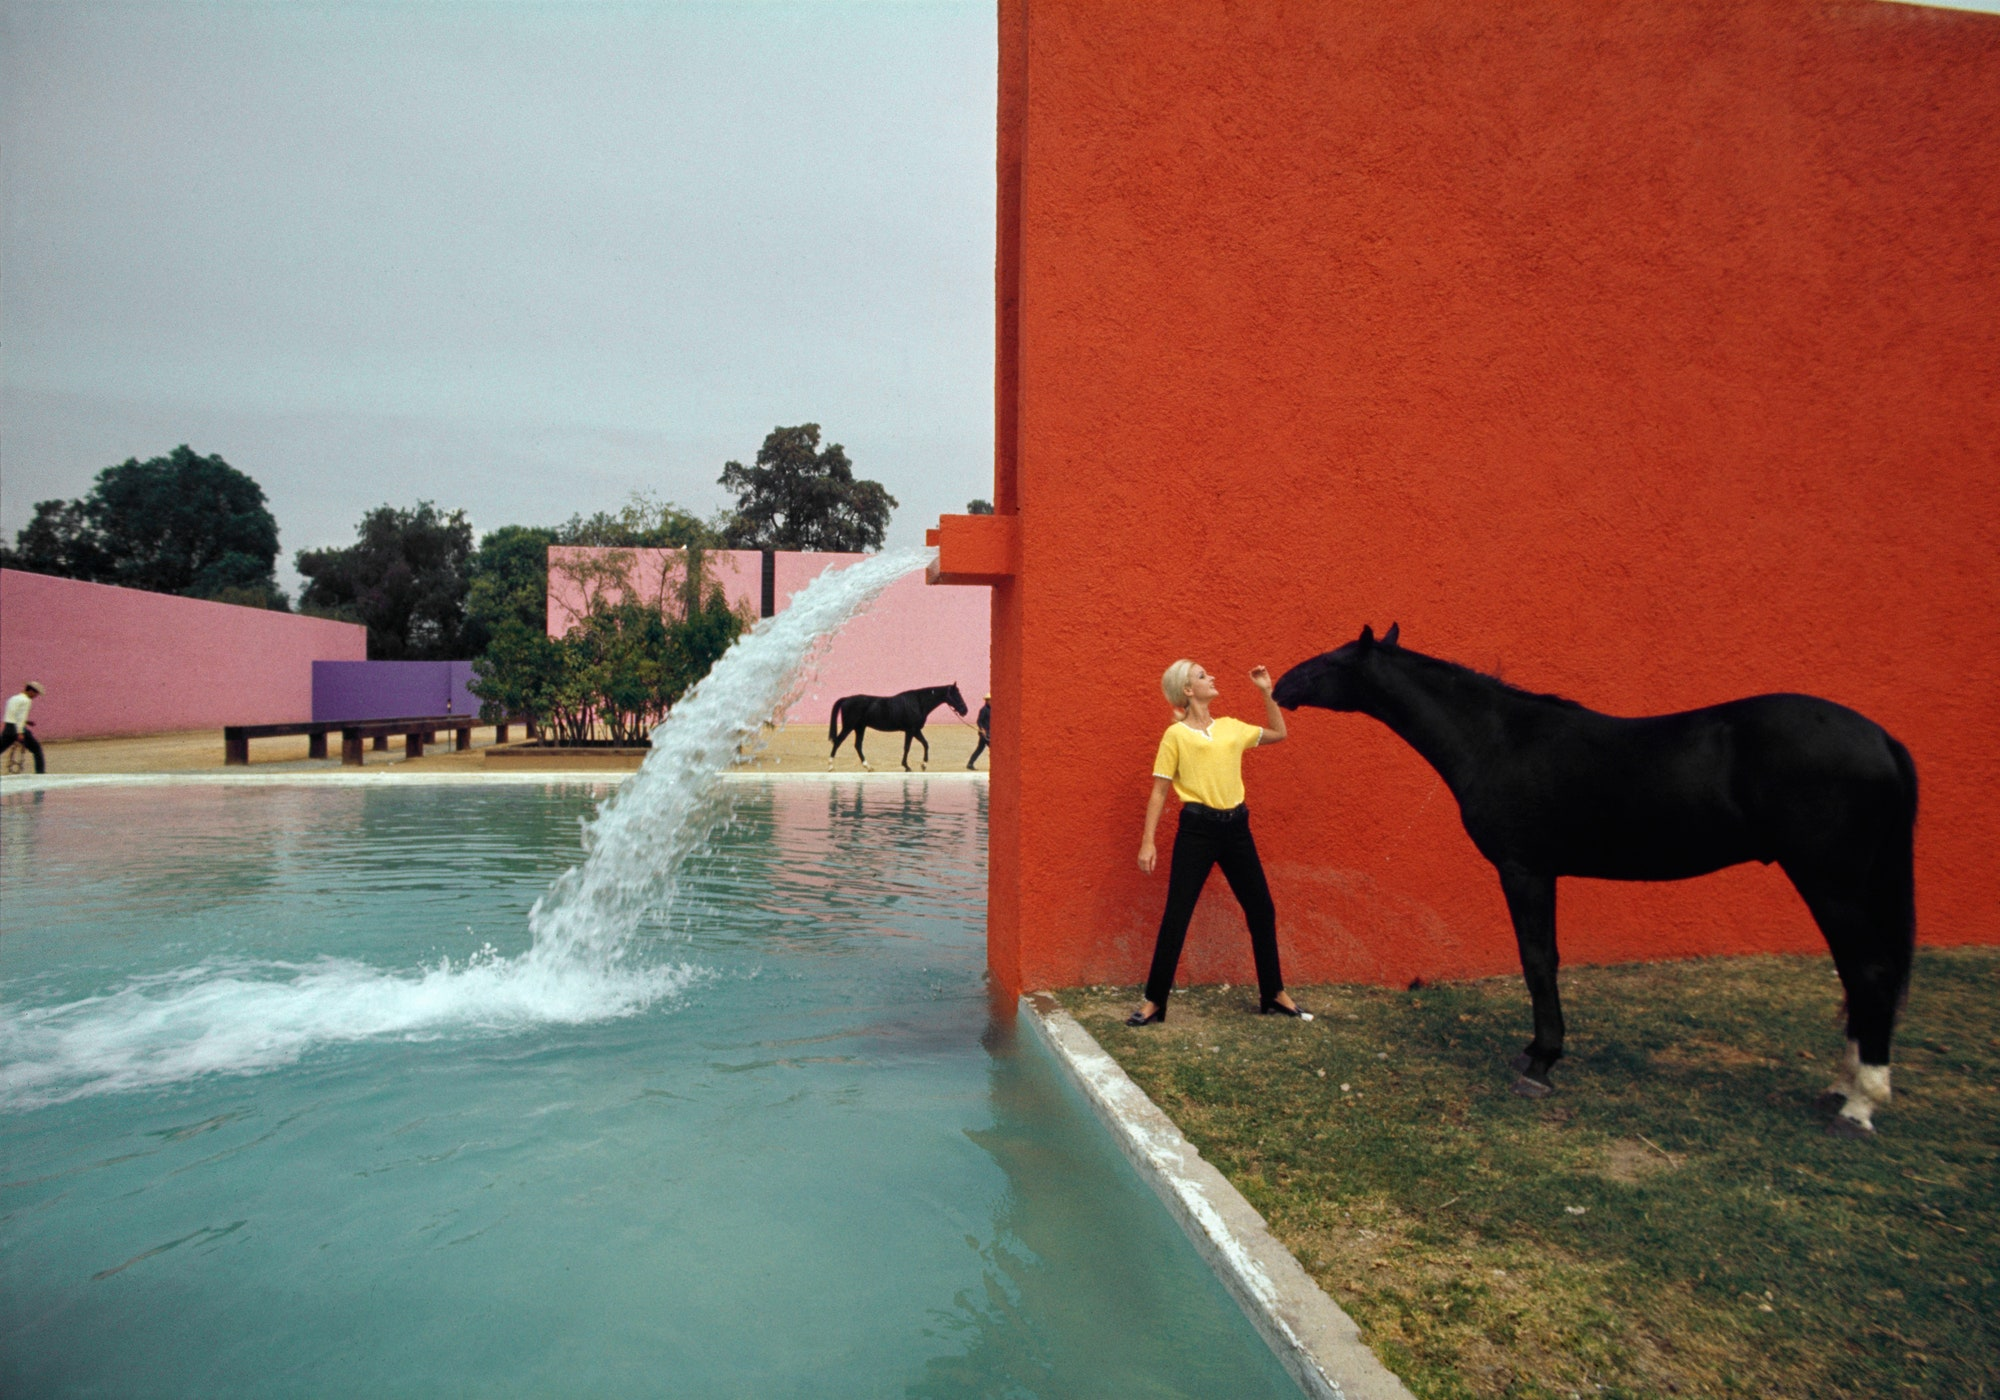 A woman holds a black horse's bridal in front of a tomato-colored wall at Luis Barragán's Cuadra San Cristóbal stables. There's also a flat blue pool and pink and purple structures in the background.